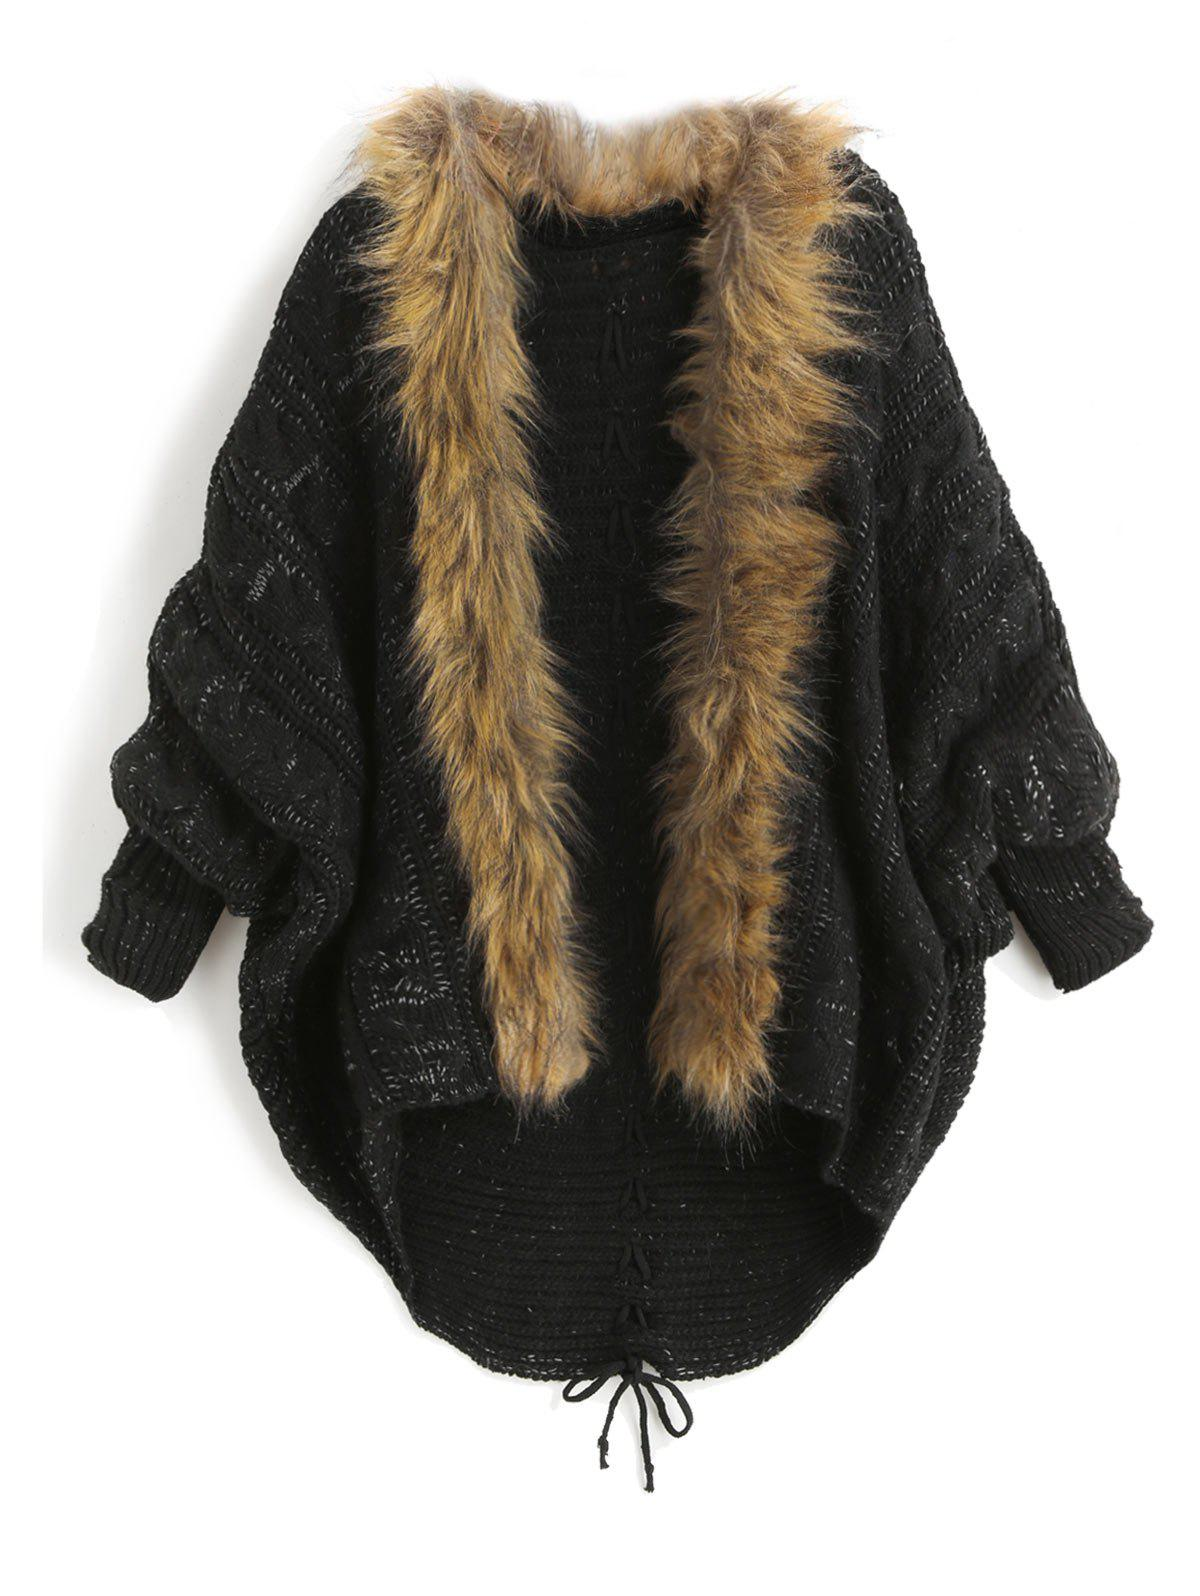 Faux Fur Trim Lace Up Batwing Sleeve Cardigan - BLACK ONE SIZE